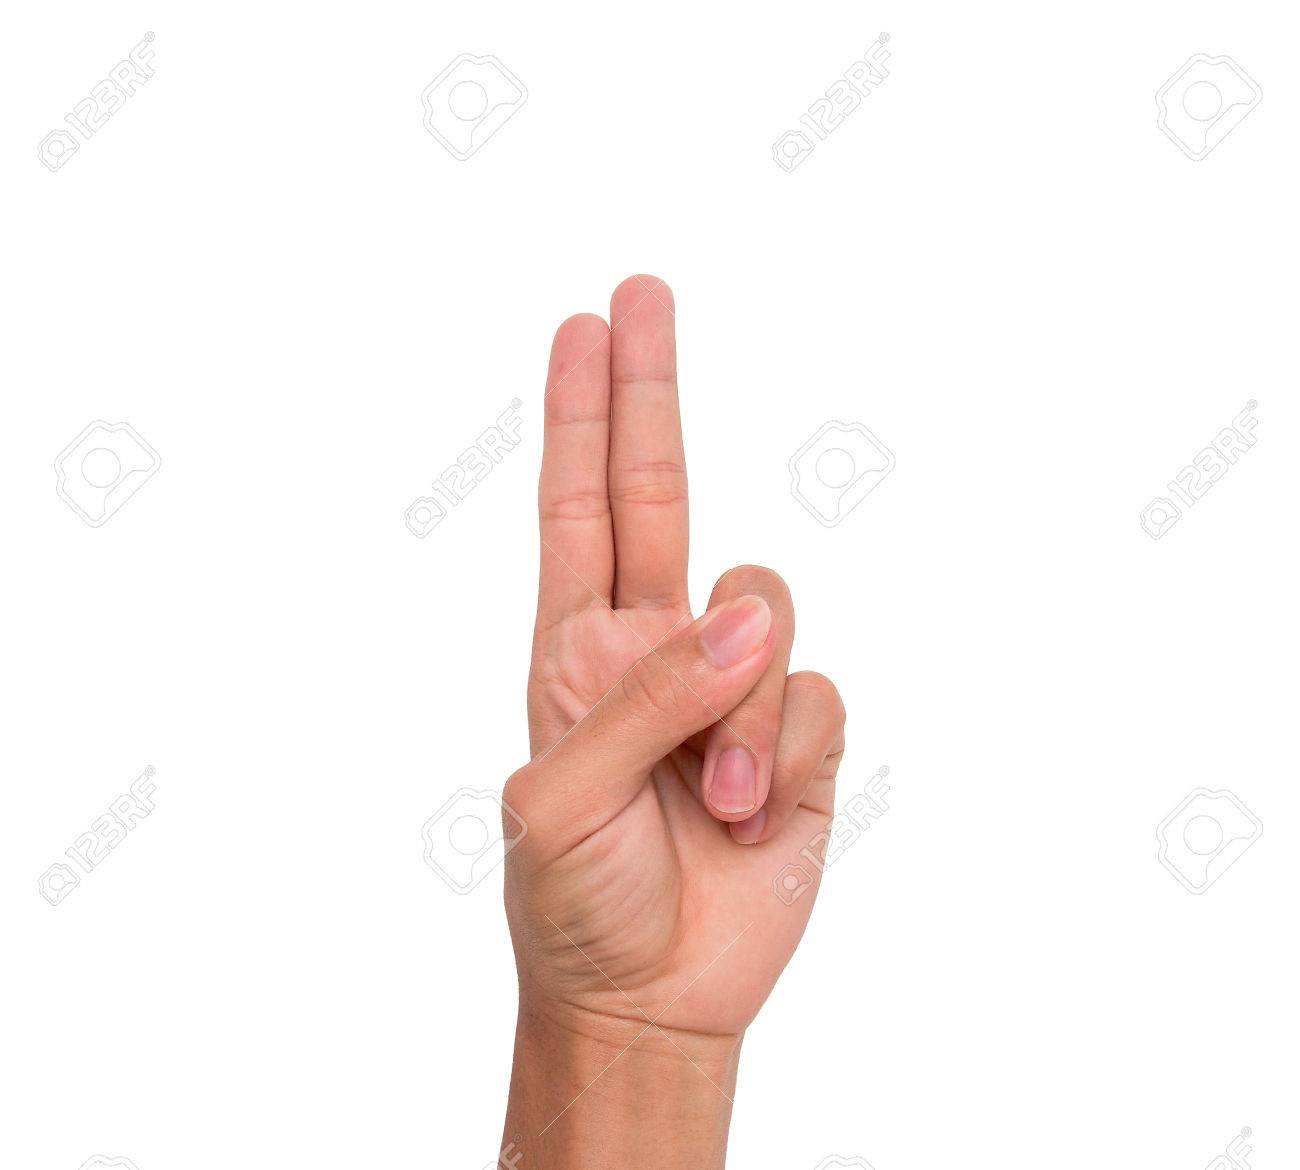 A Hand Sign 2 Fingers Point Upward Meaning Two Second Etc Stock